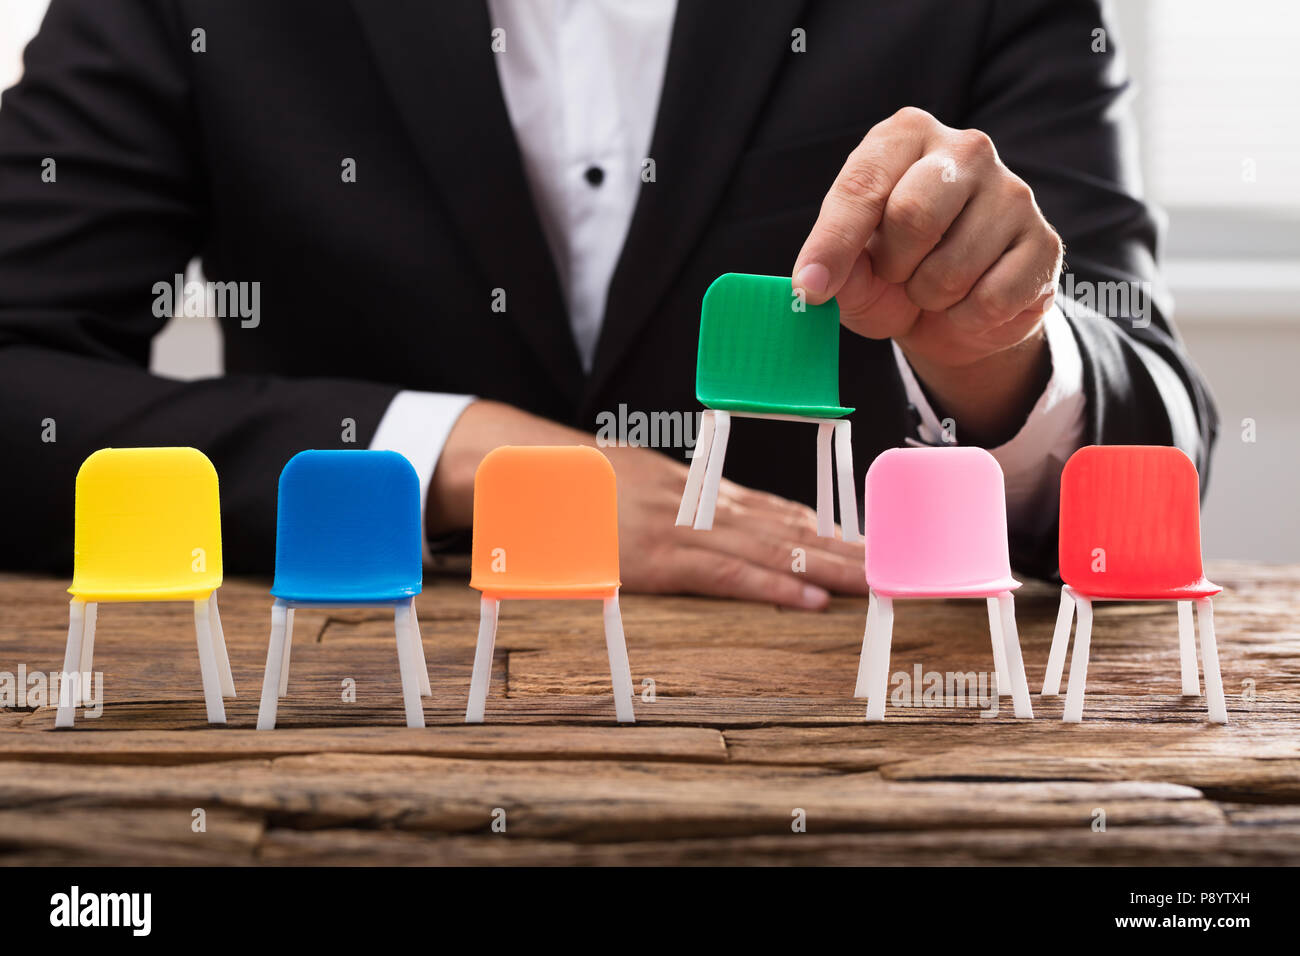 Businessperson's hand picking up green chair among others on wooden desk - Stock Image